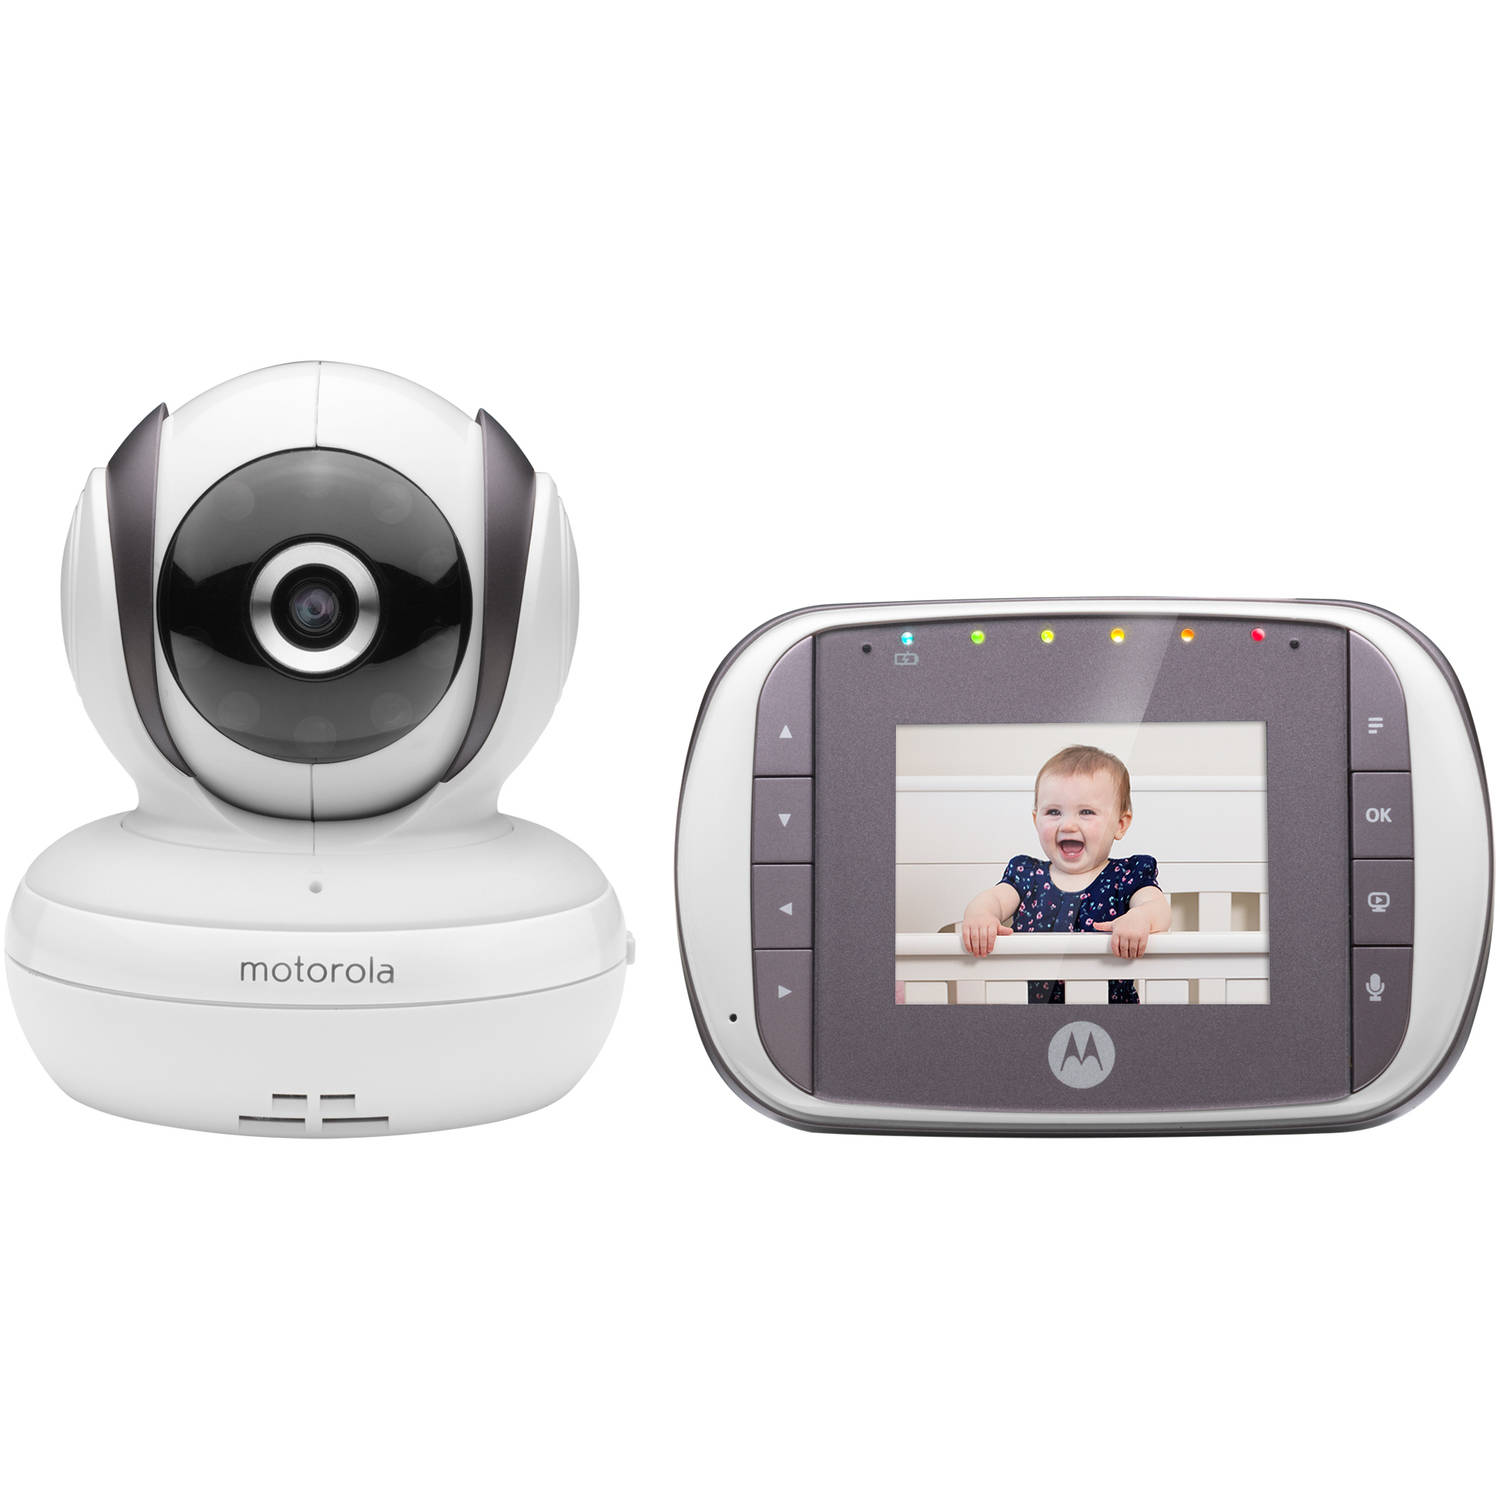 Motorola MBP35S Digital Video Baby Monitor